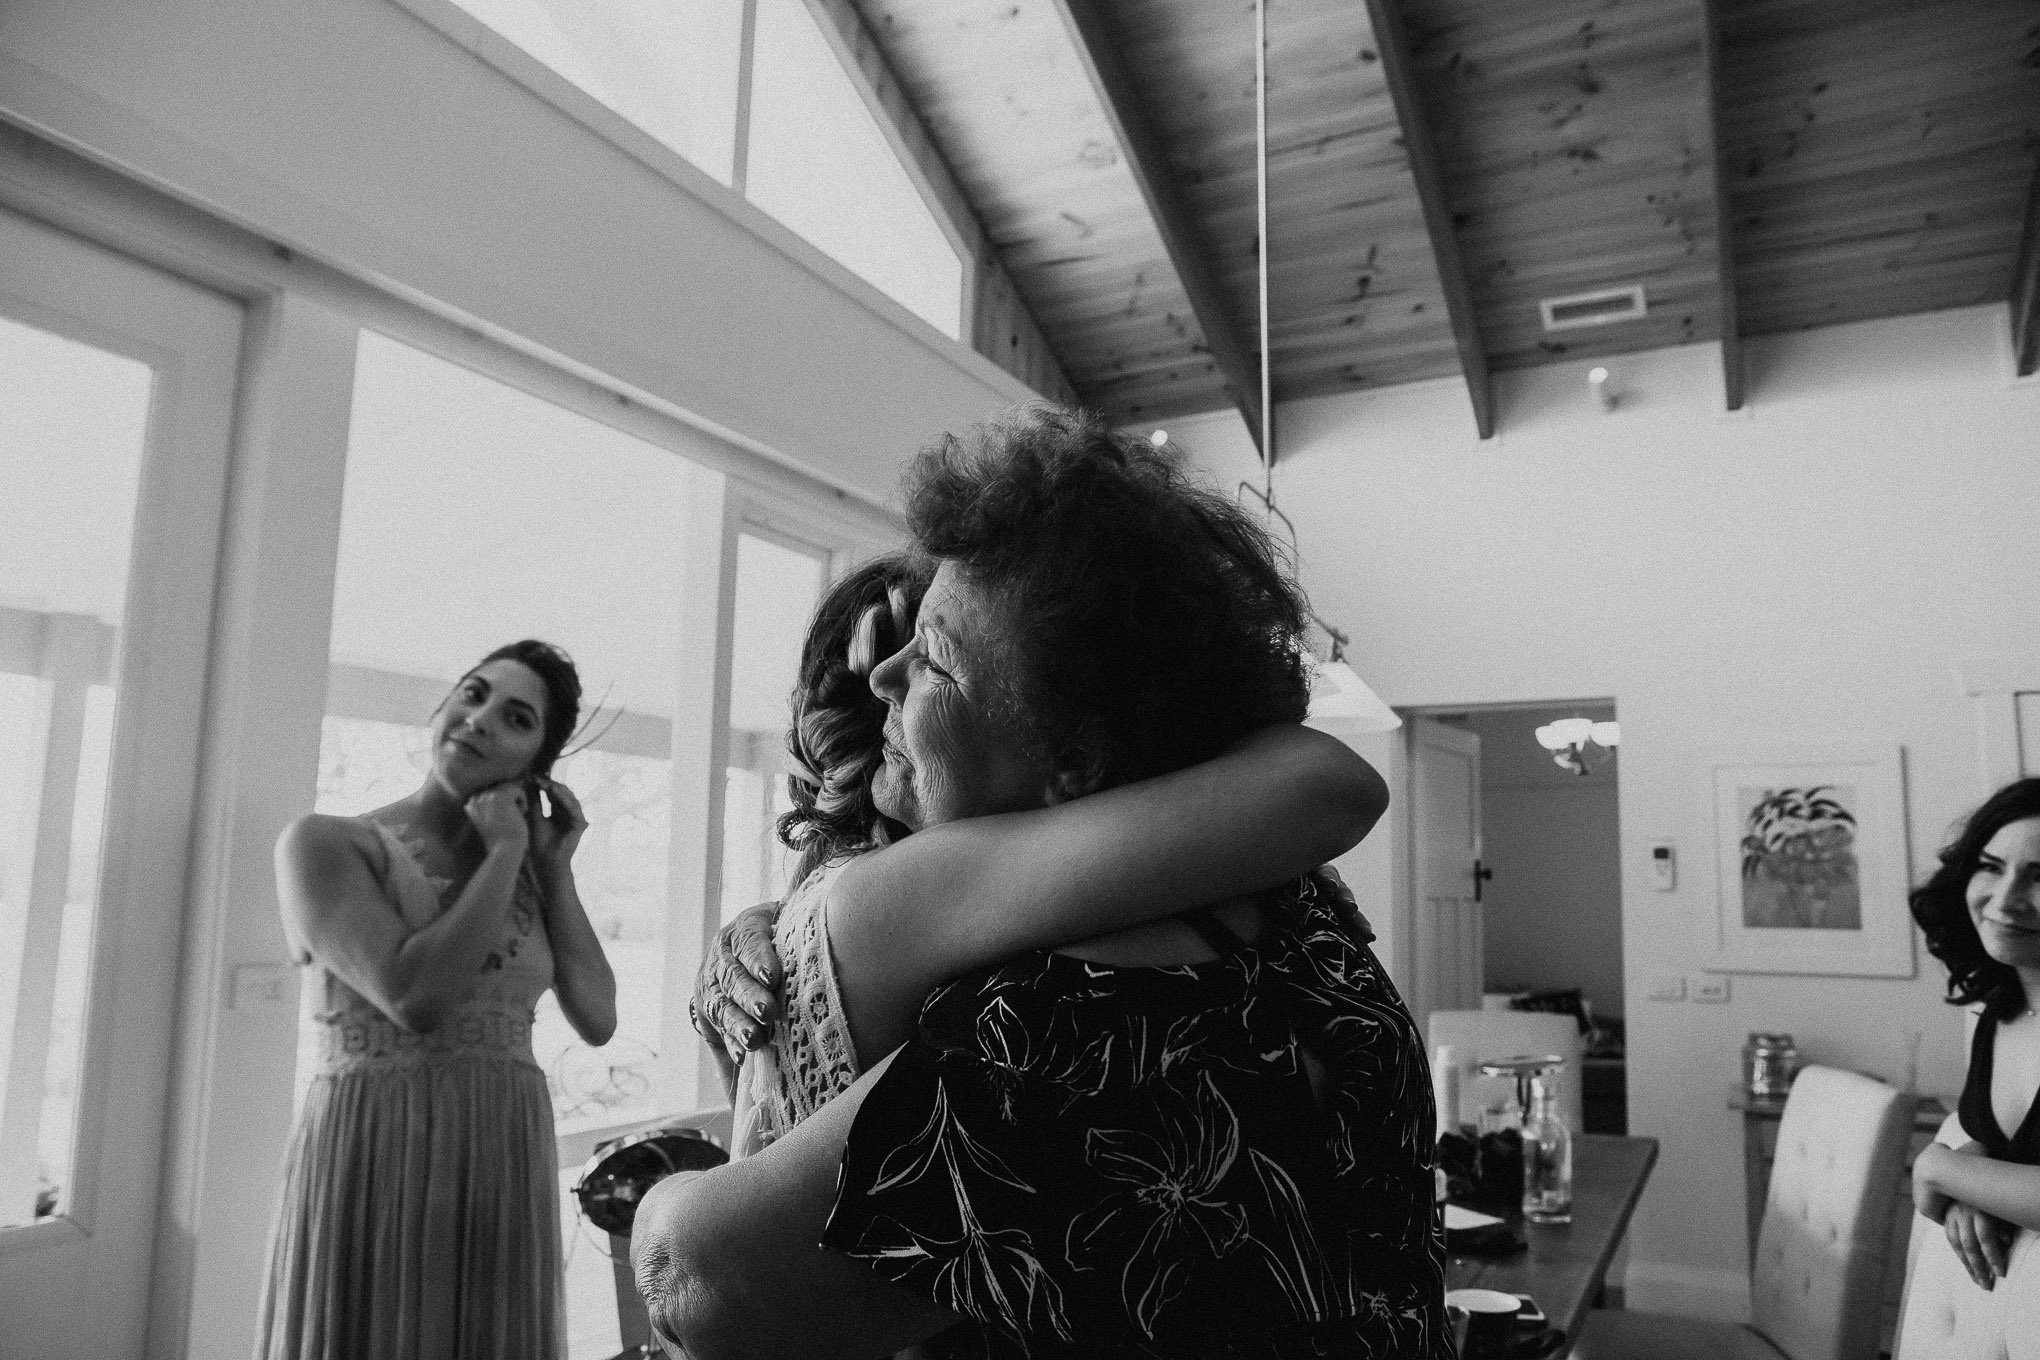 An emotional reunion between a bride and her grandmother